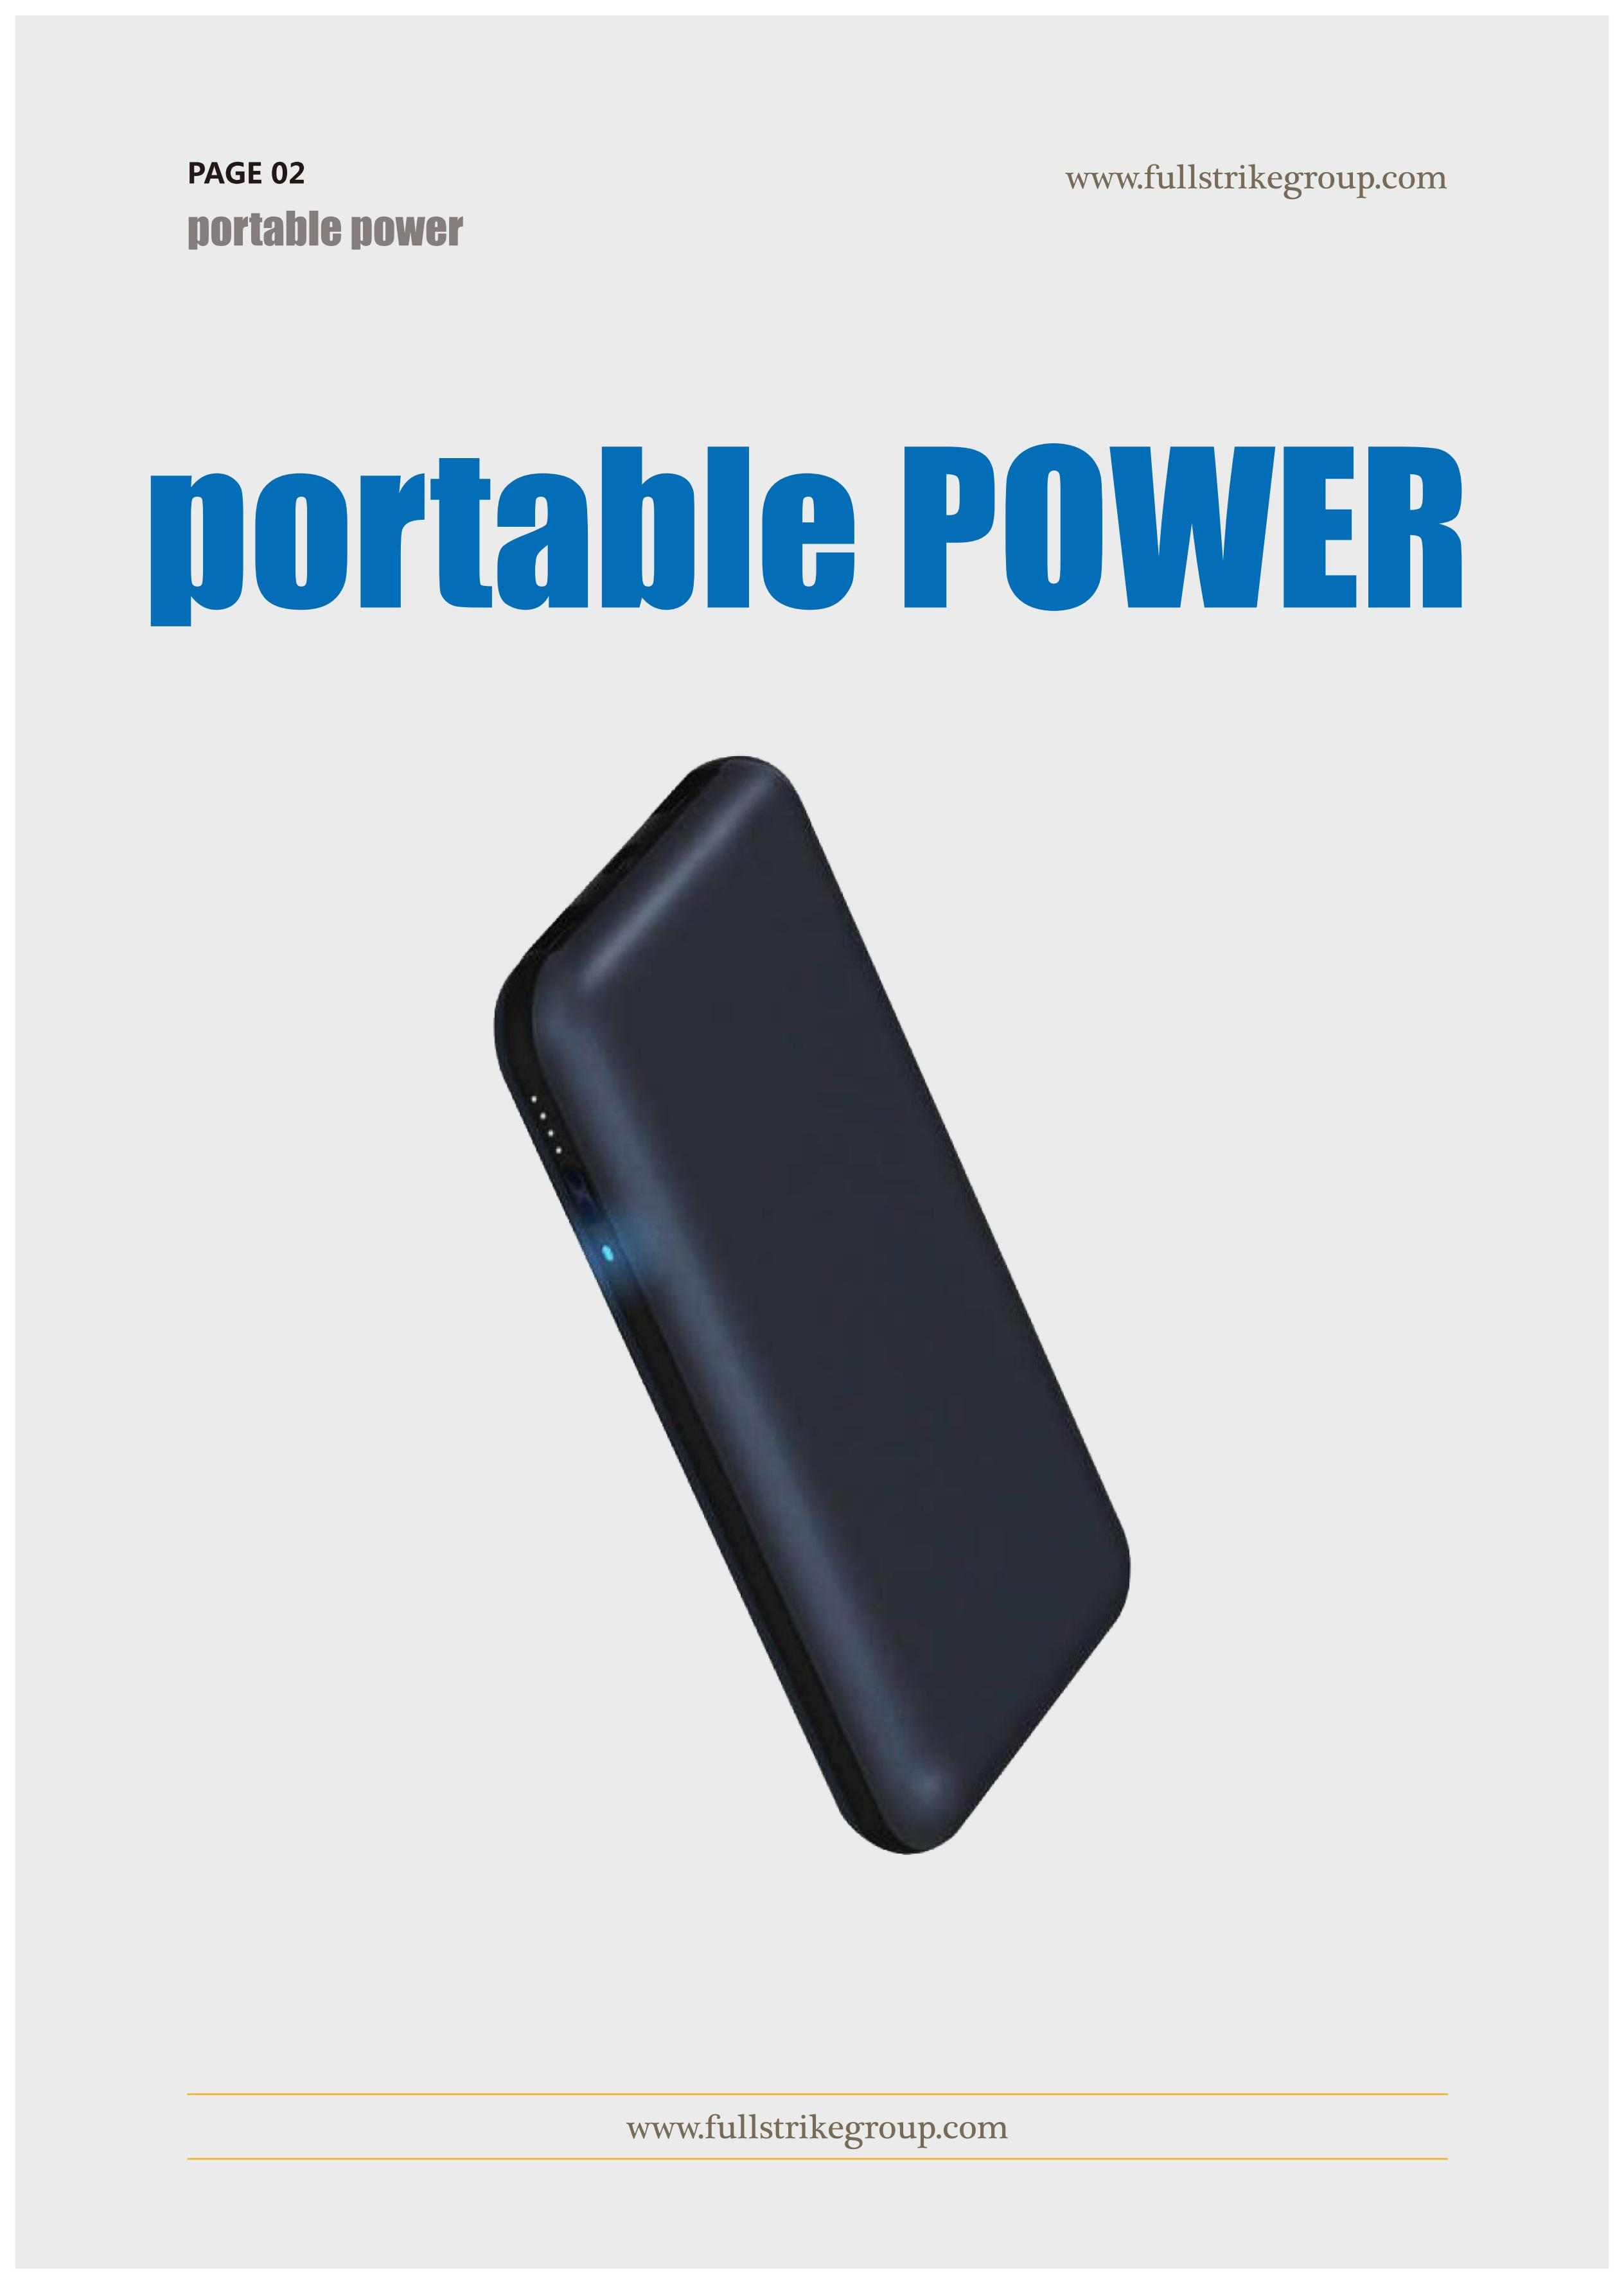 full strike,portable power,group